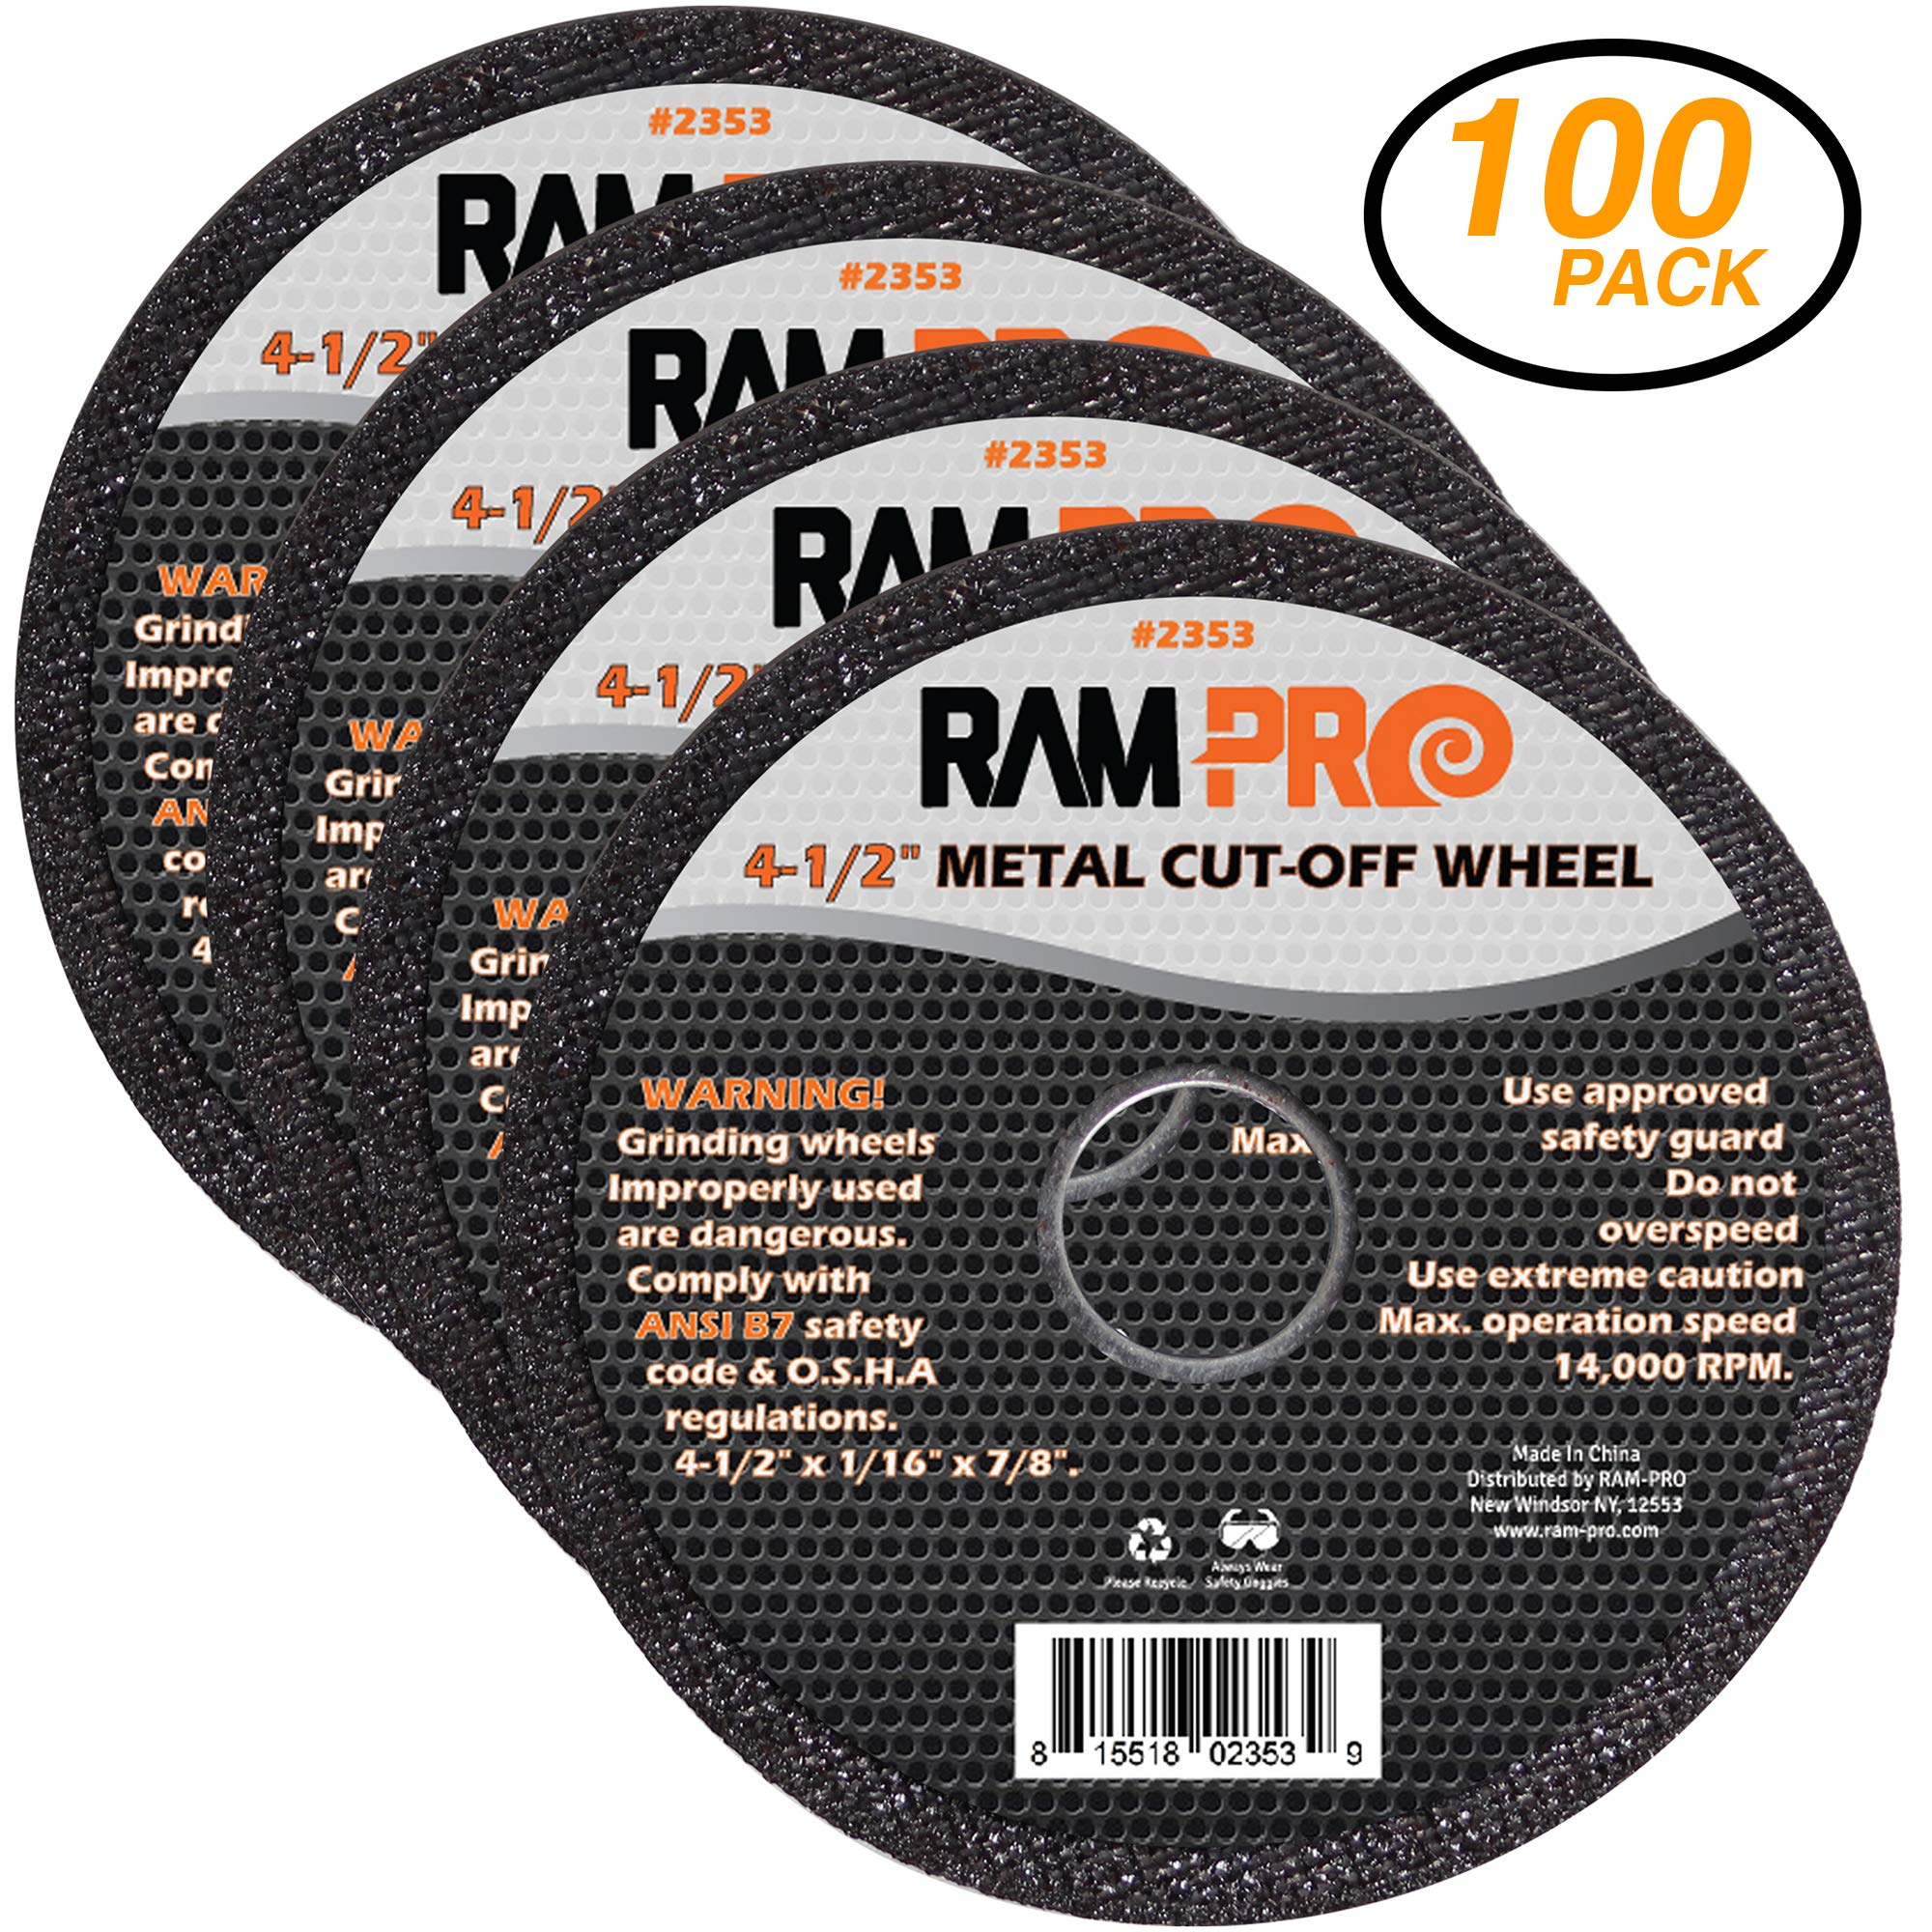 Ram-Pro 4-1/2 Inch Metal Cut-Off Wheel Blades | Abrasive Arbor Grinder Disc Set Ideal for Cutting, Grooving, Sanding and Trimming Ferrous Metal & Steel (100 Pack).